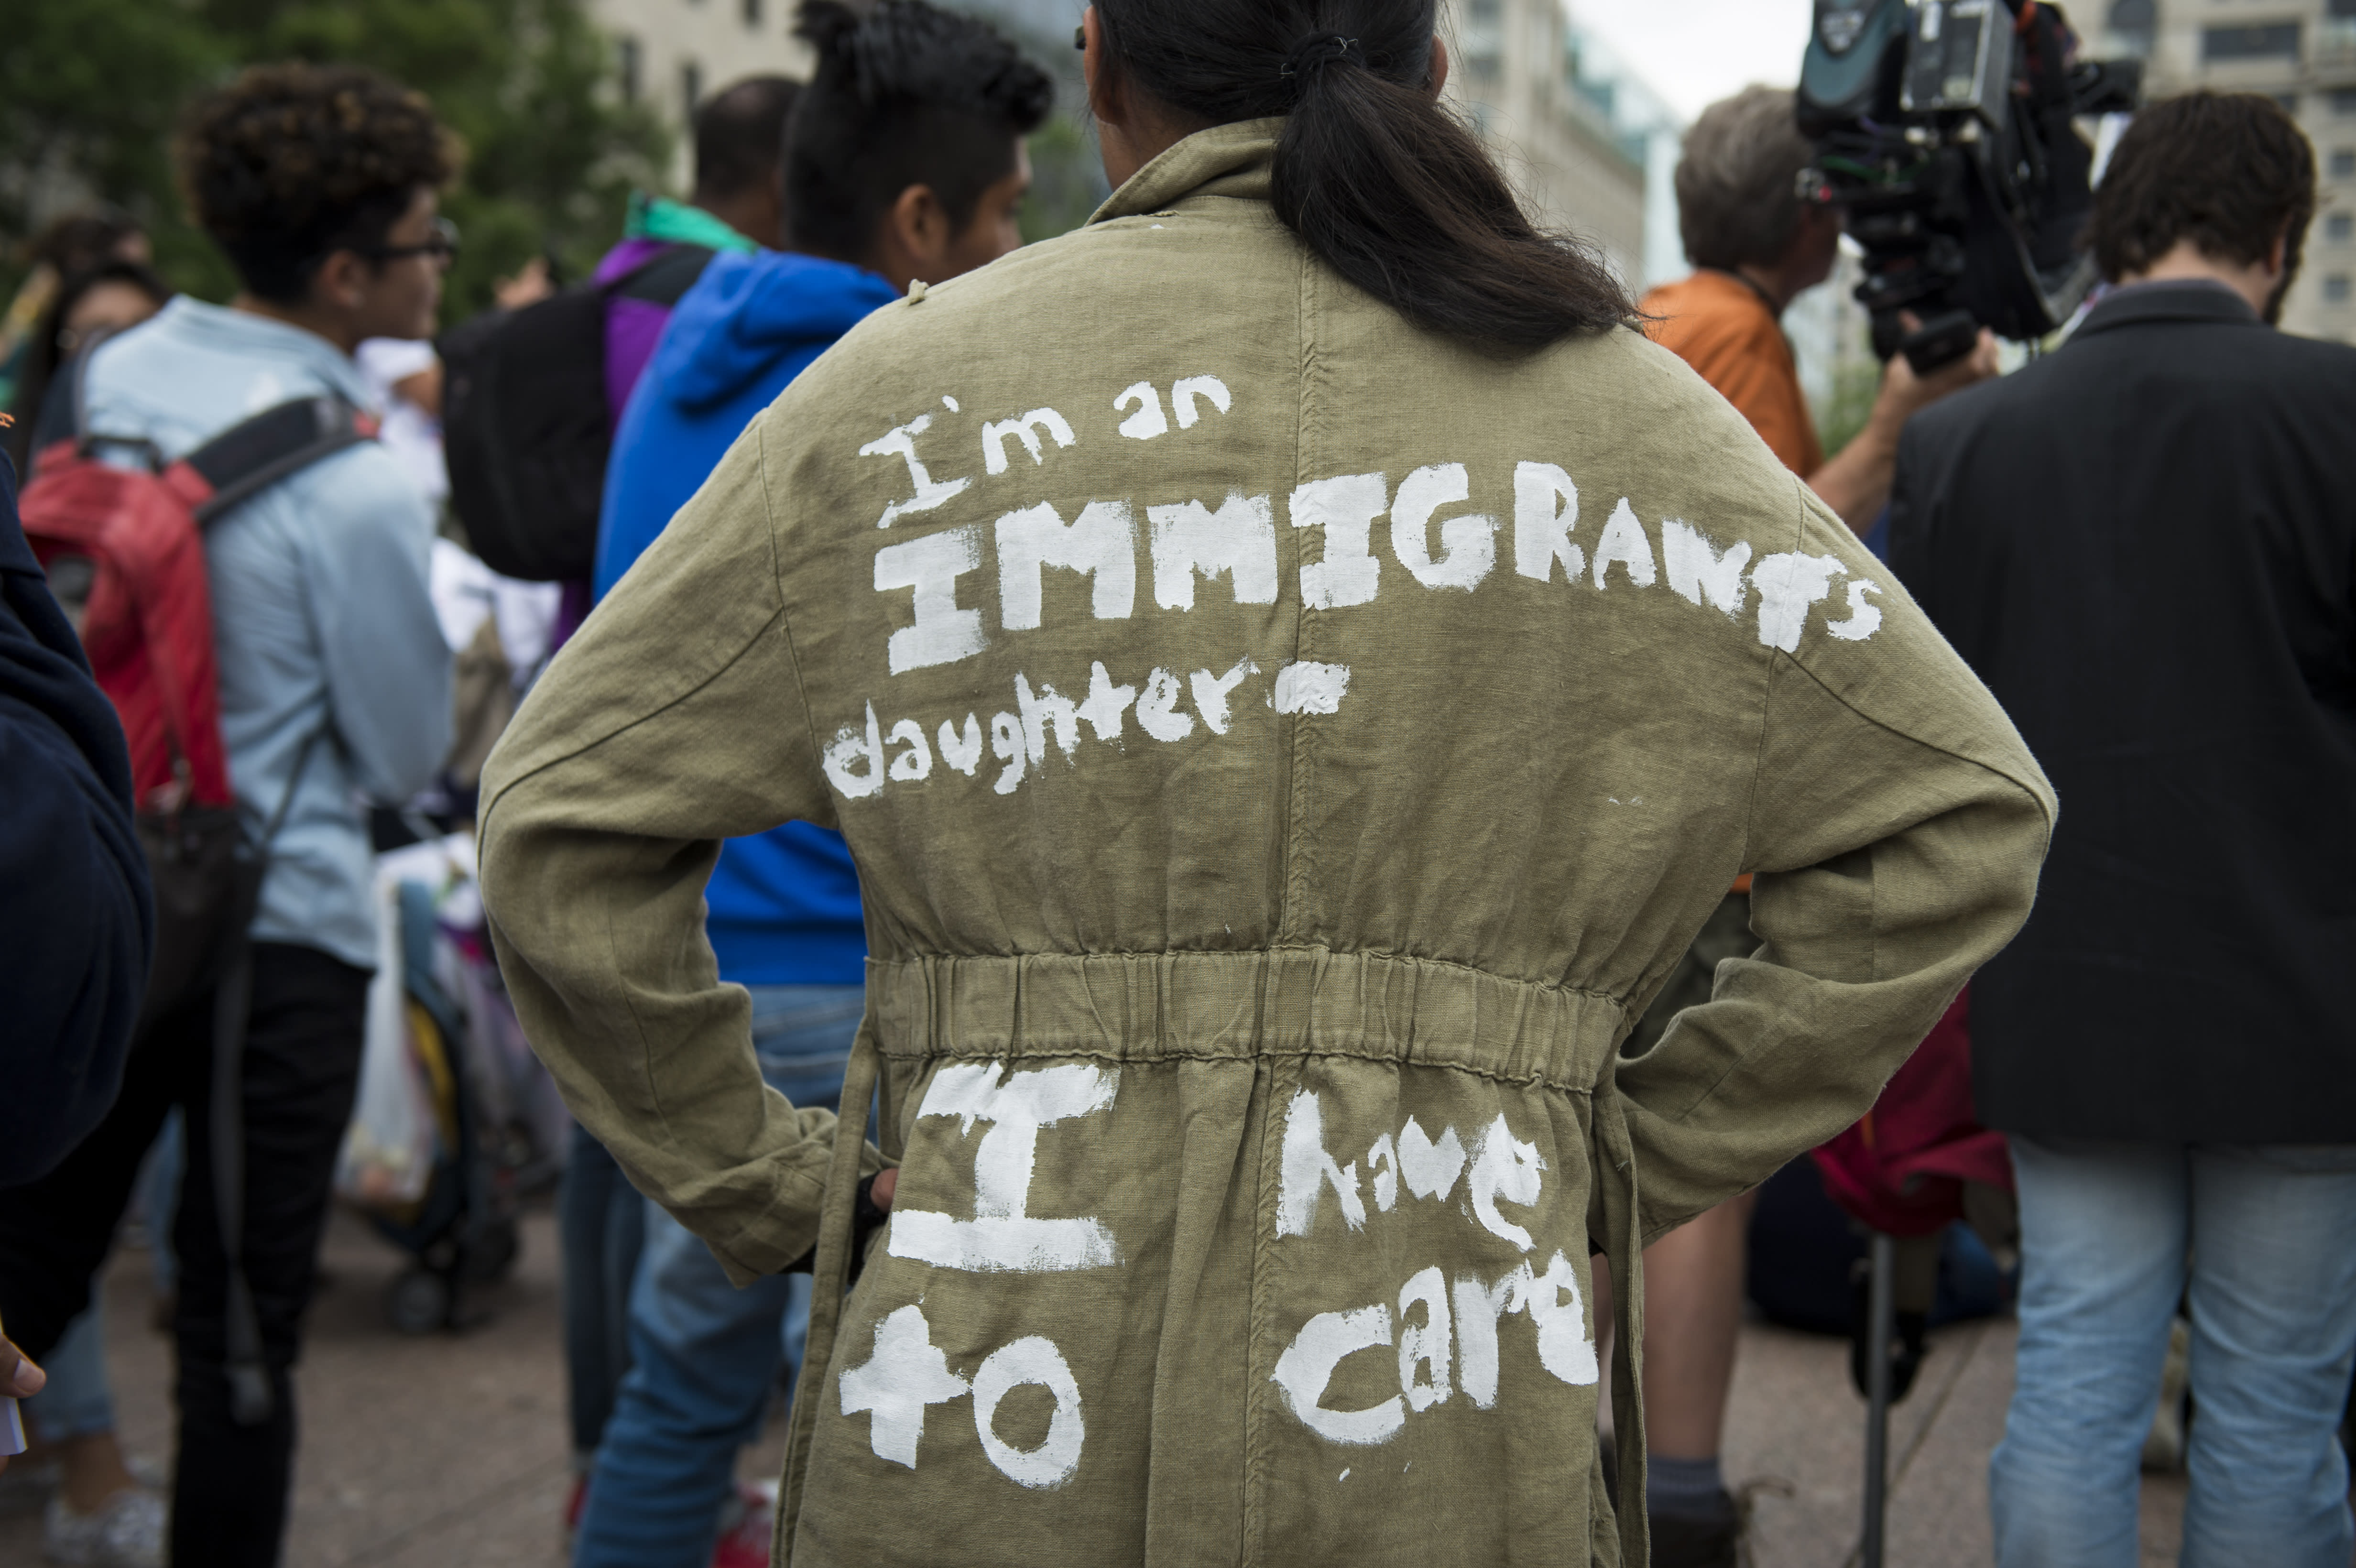 <p>A girl wears a jacket that references that of the First Lady Melania Trump during a CASA in Action rally at Freedom Plaza in downtown Washington, D.C. The protest was organized to protest the Trump Administration zero tolerance policy that separates children from their families at the southern border Wednesday June 27, 2018. (Photo: Sarah Silbiger/CQ Roll Call/Getty Images) </p>